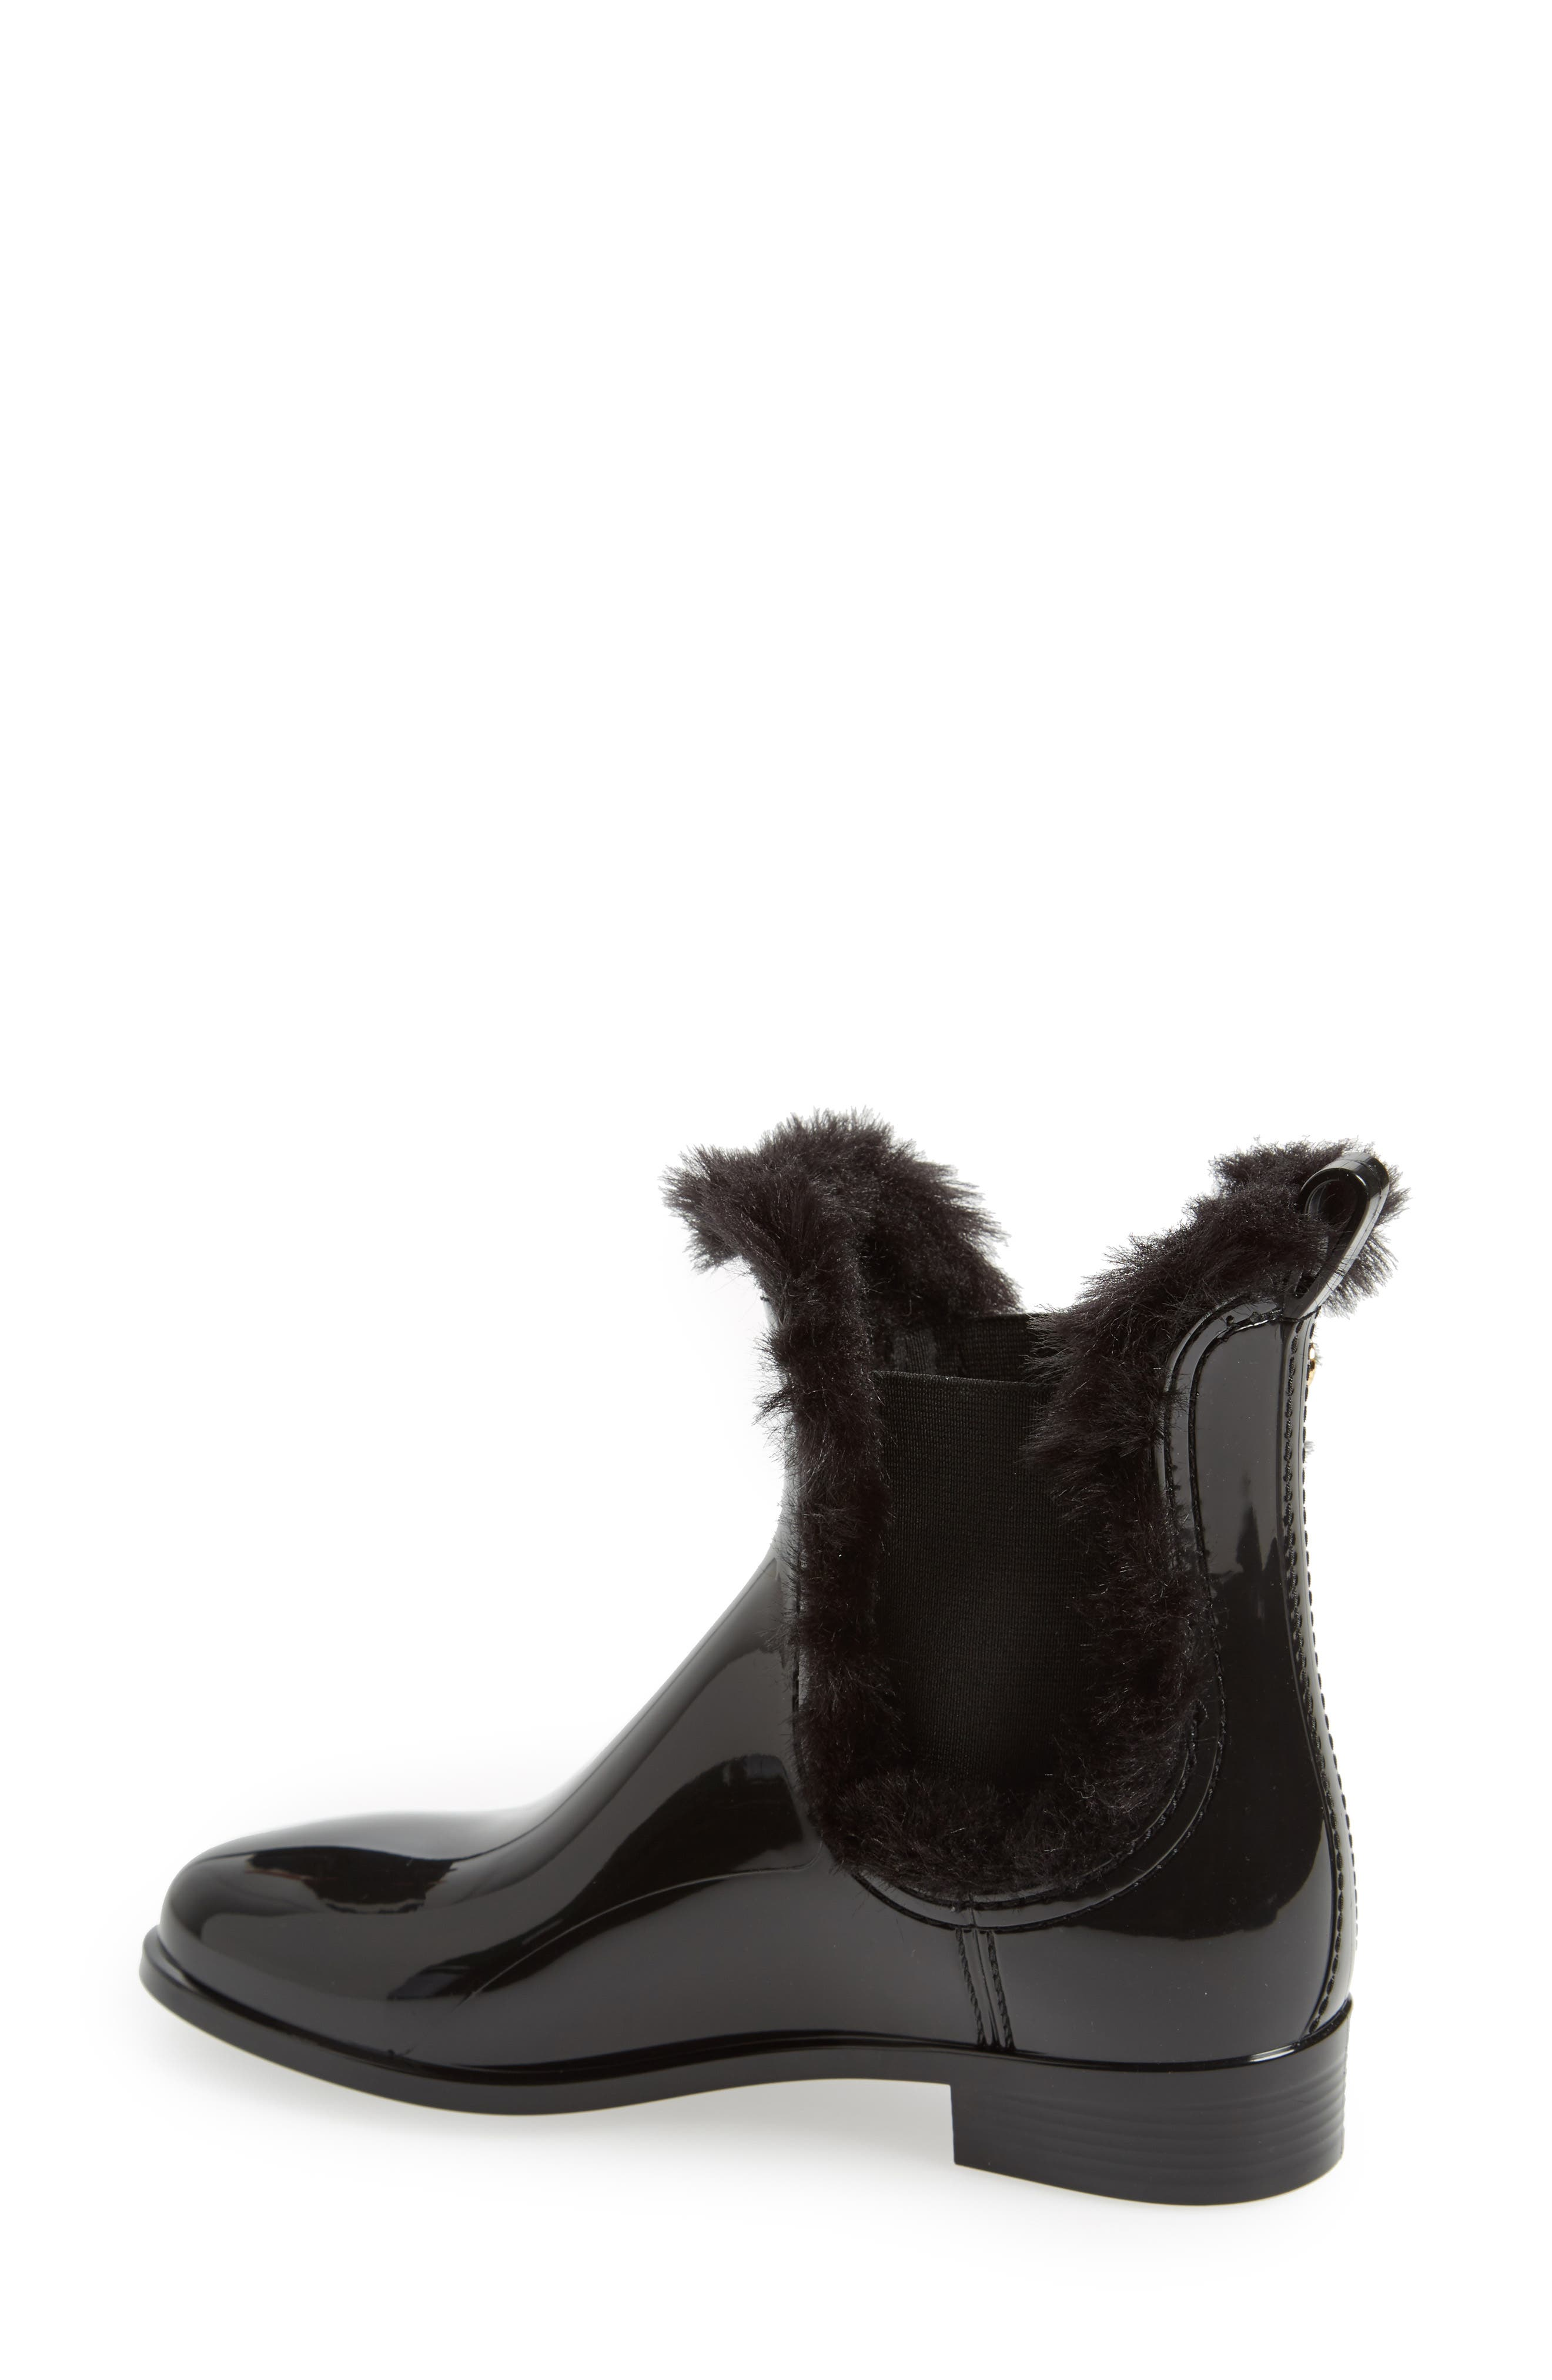 Aisha Waterproof Chelsea Boot with Faux Fur Lining,                             Alternate thumbnail 2, color,                             BLACK GLOSS